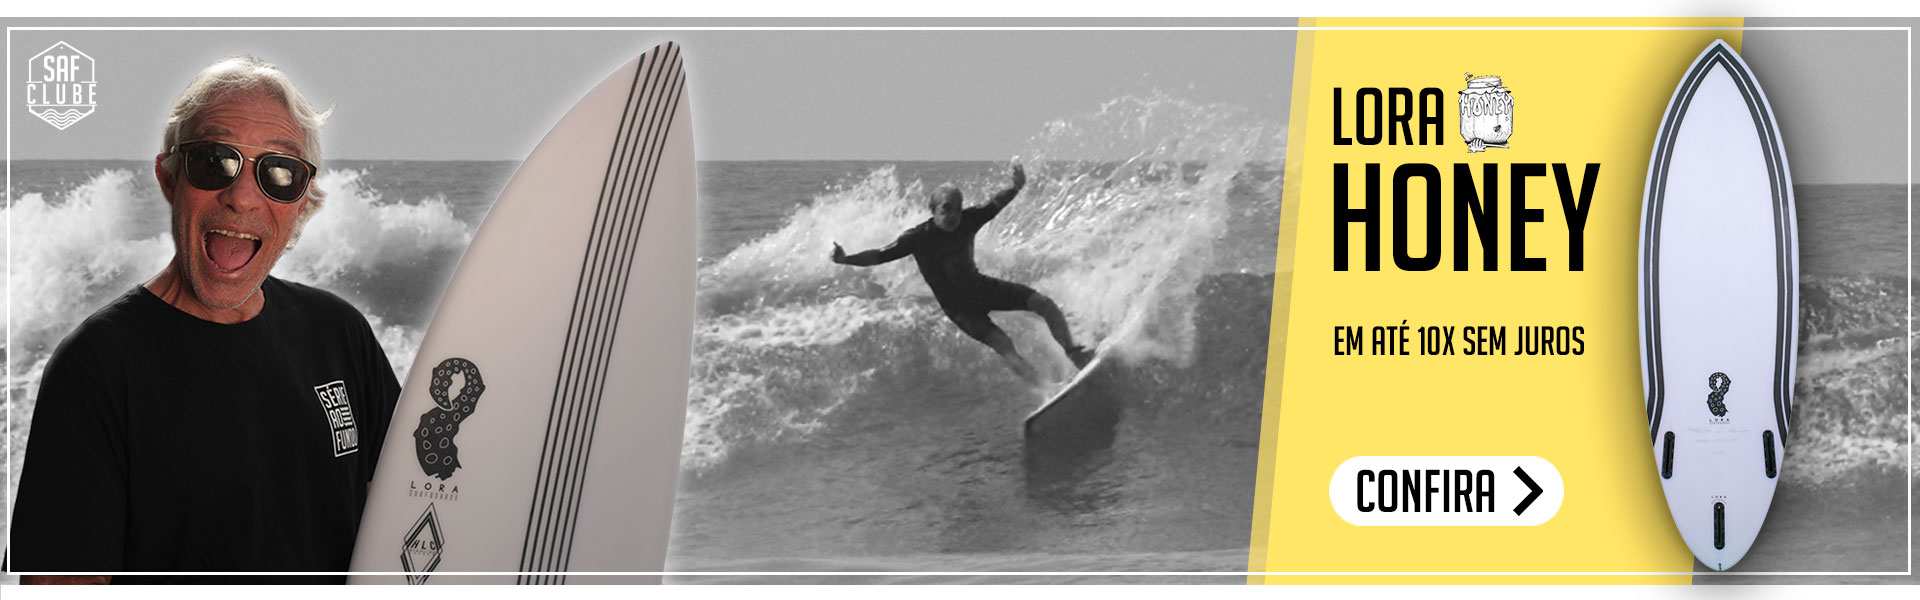 Prancha de Surf Honey Lora Surfboards